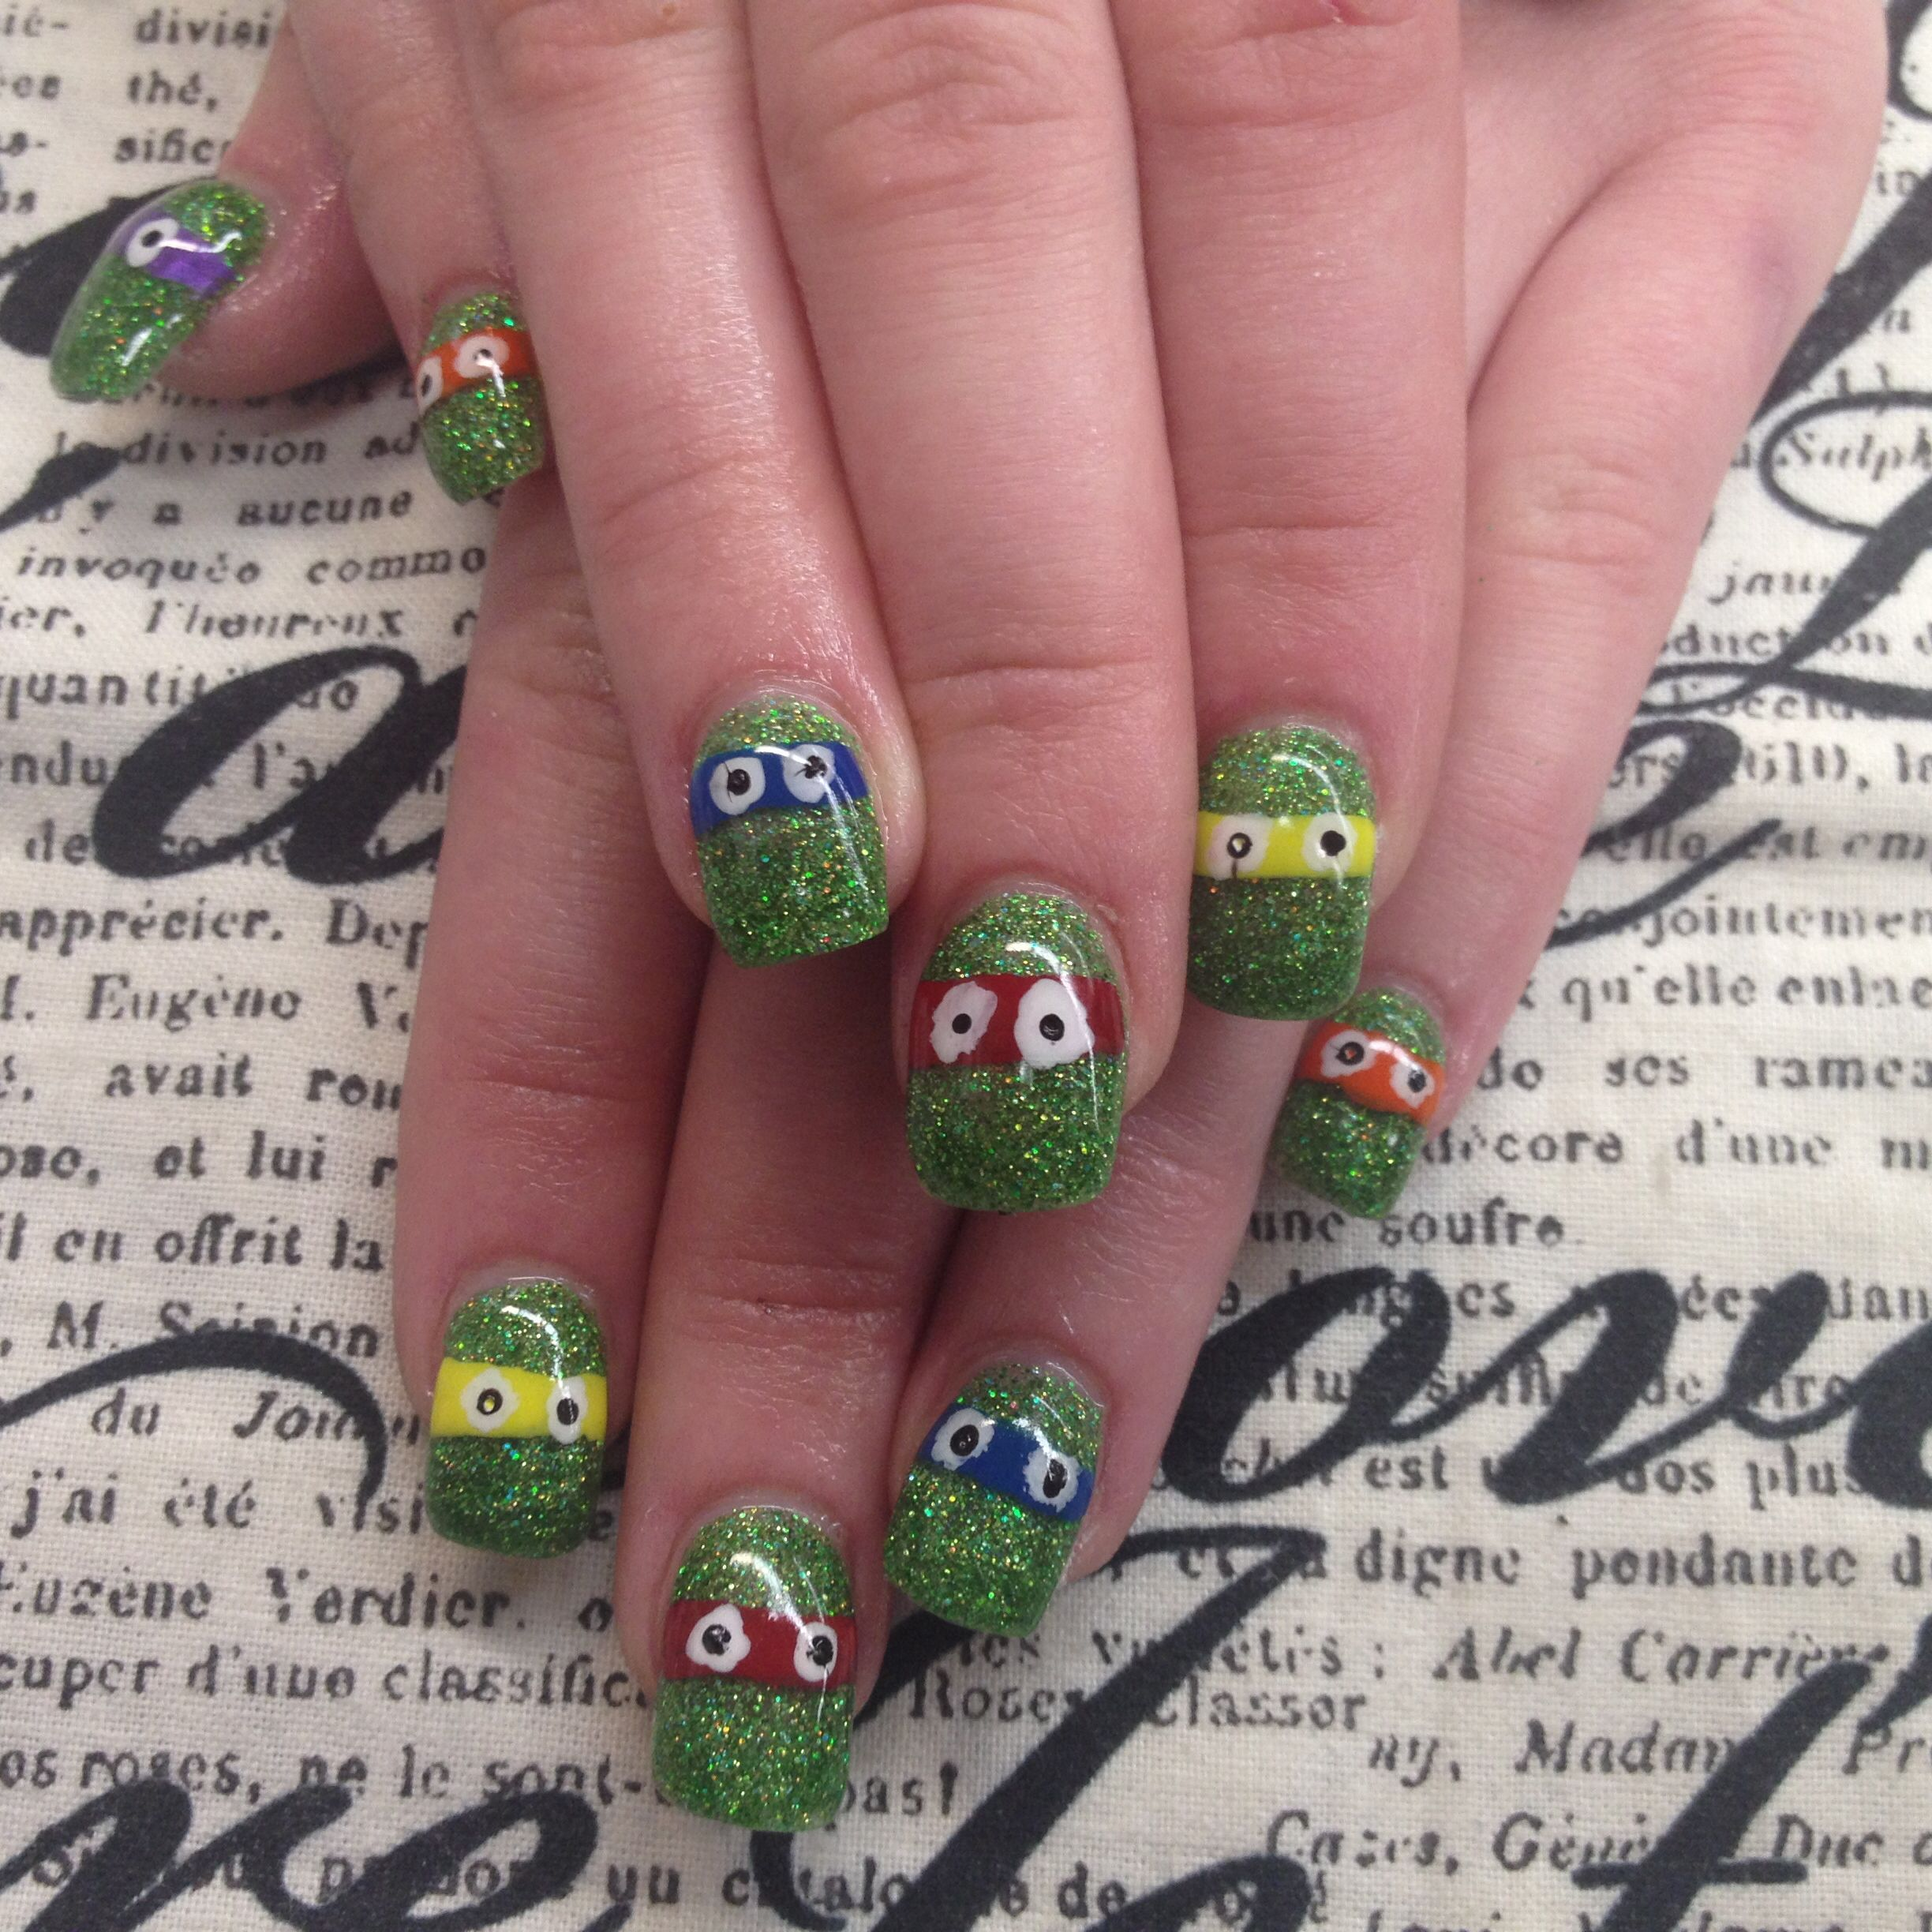 Ninja turtle nails | Nails by Deb | Pinterest | Ninja turtles and ...